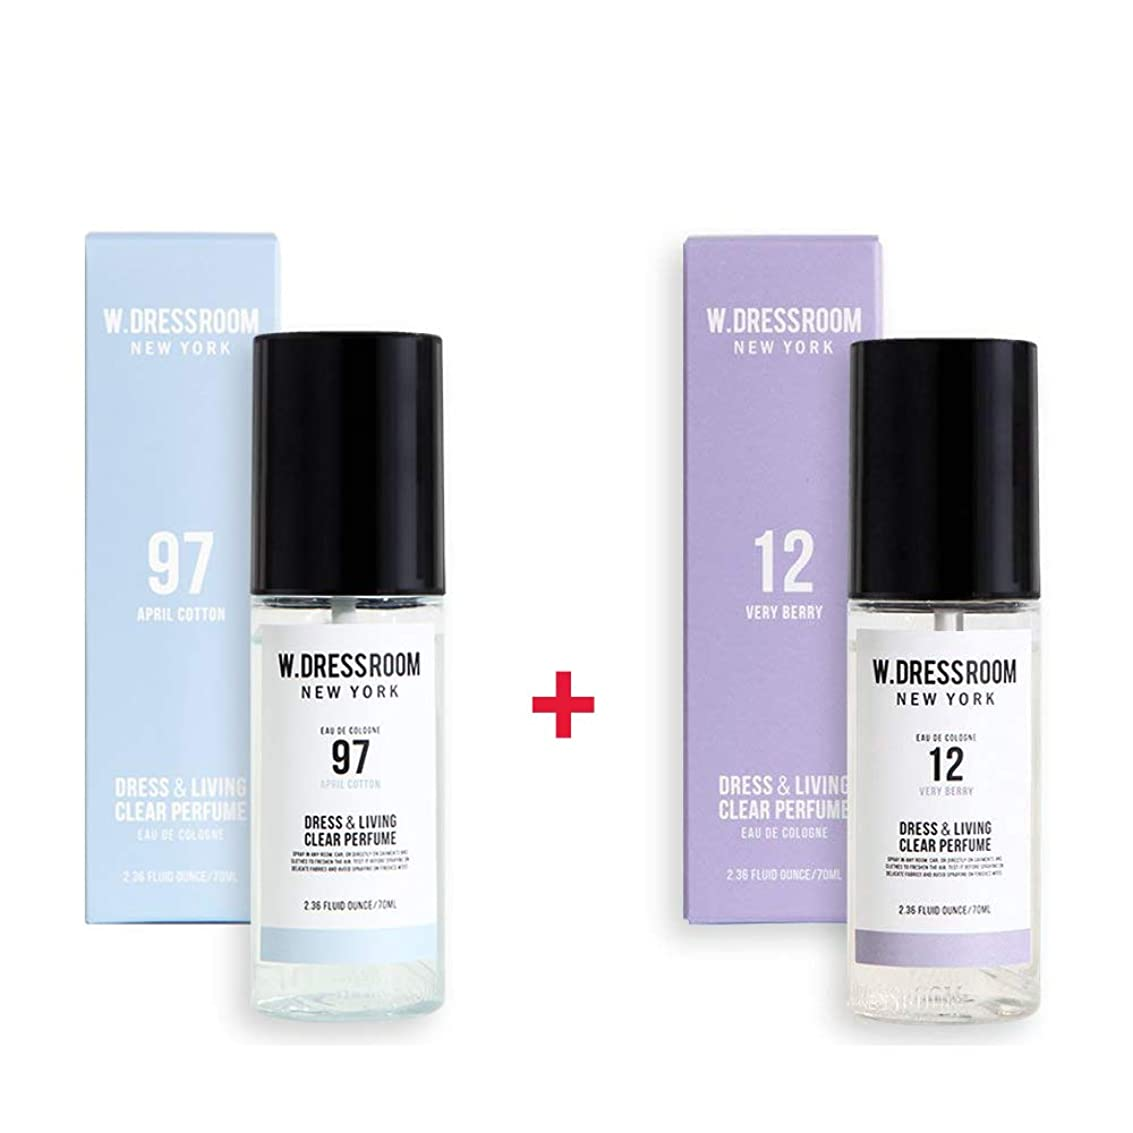 ペインピンク習字W.DRESSROOM Dress & Living Clear Perfume 70ml (No 97 April Cotton)+(No 12 Very Berry)